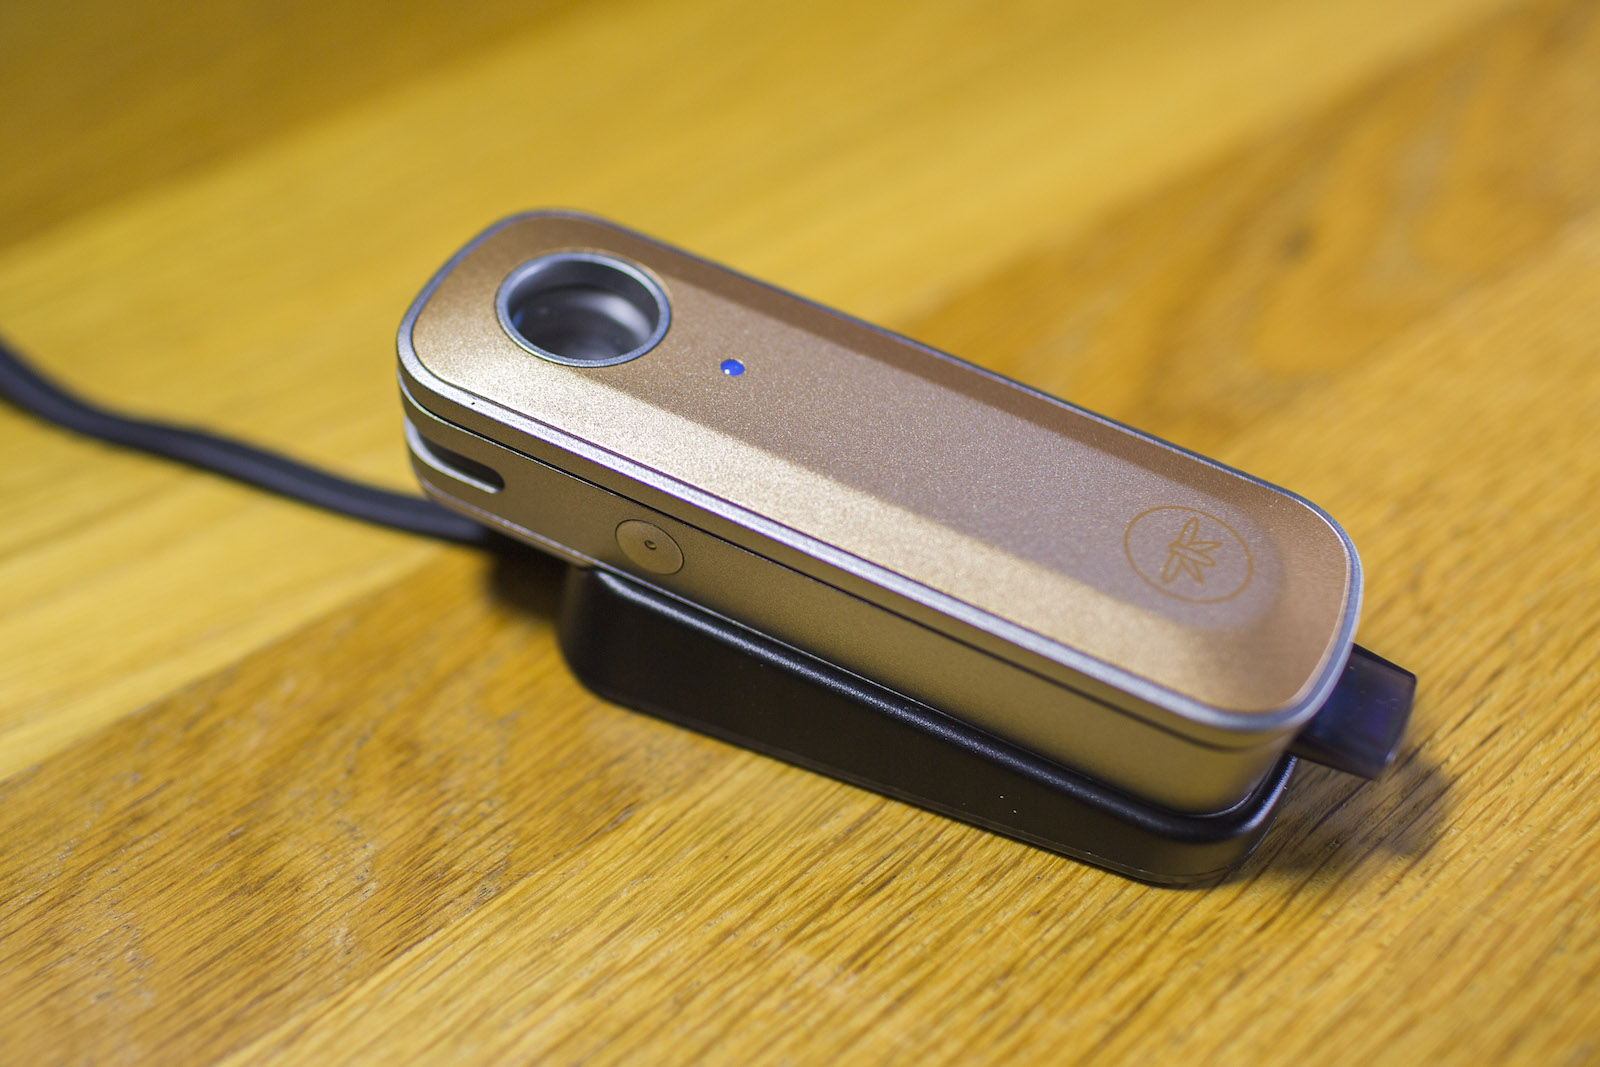 Firefly 2 - on its dock